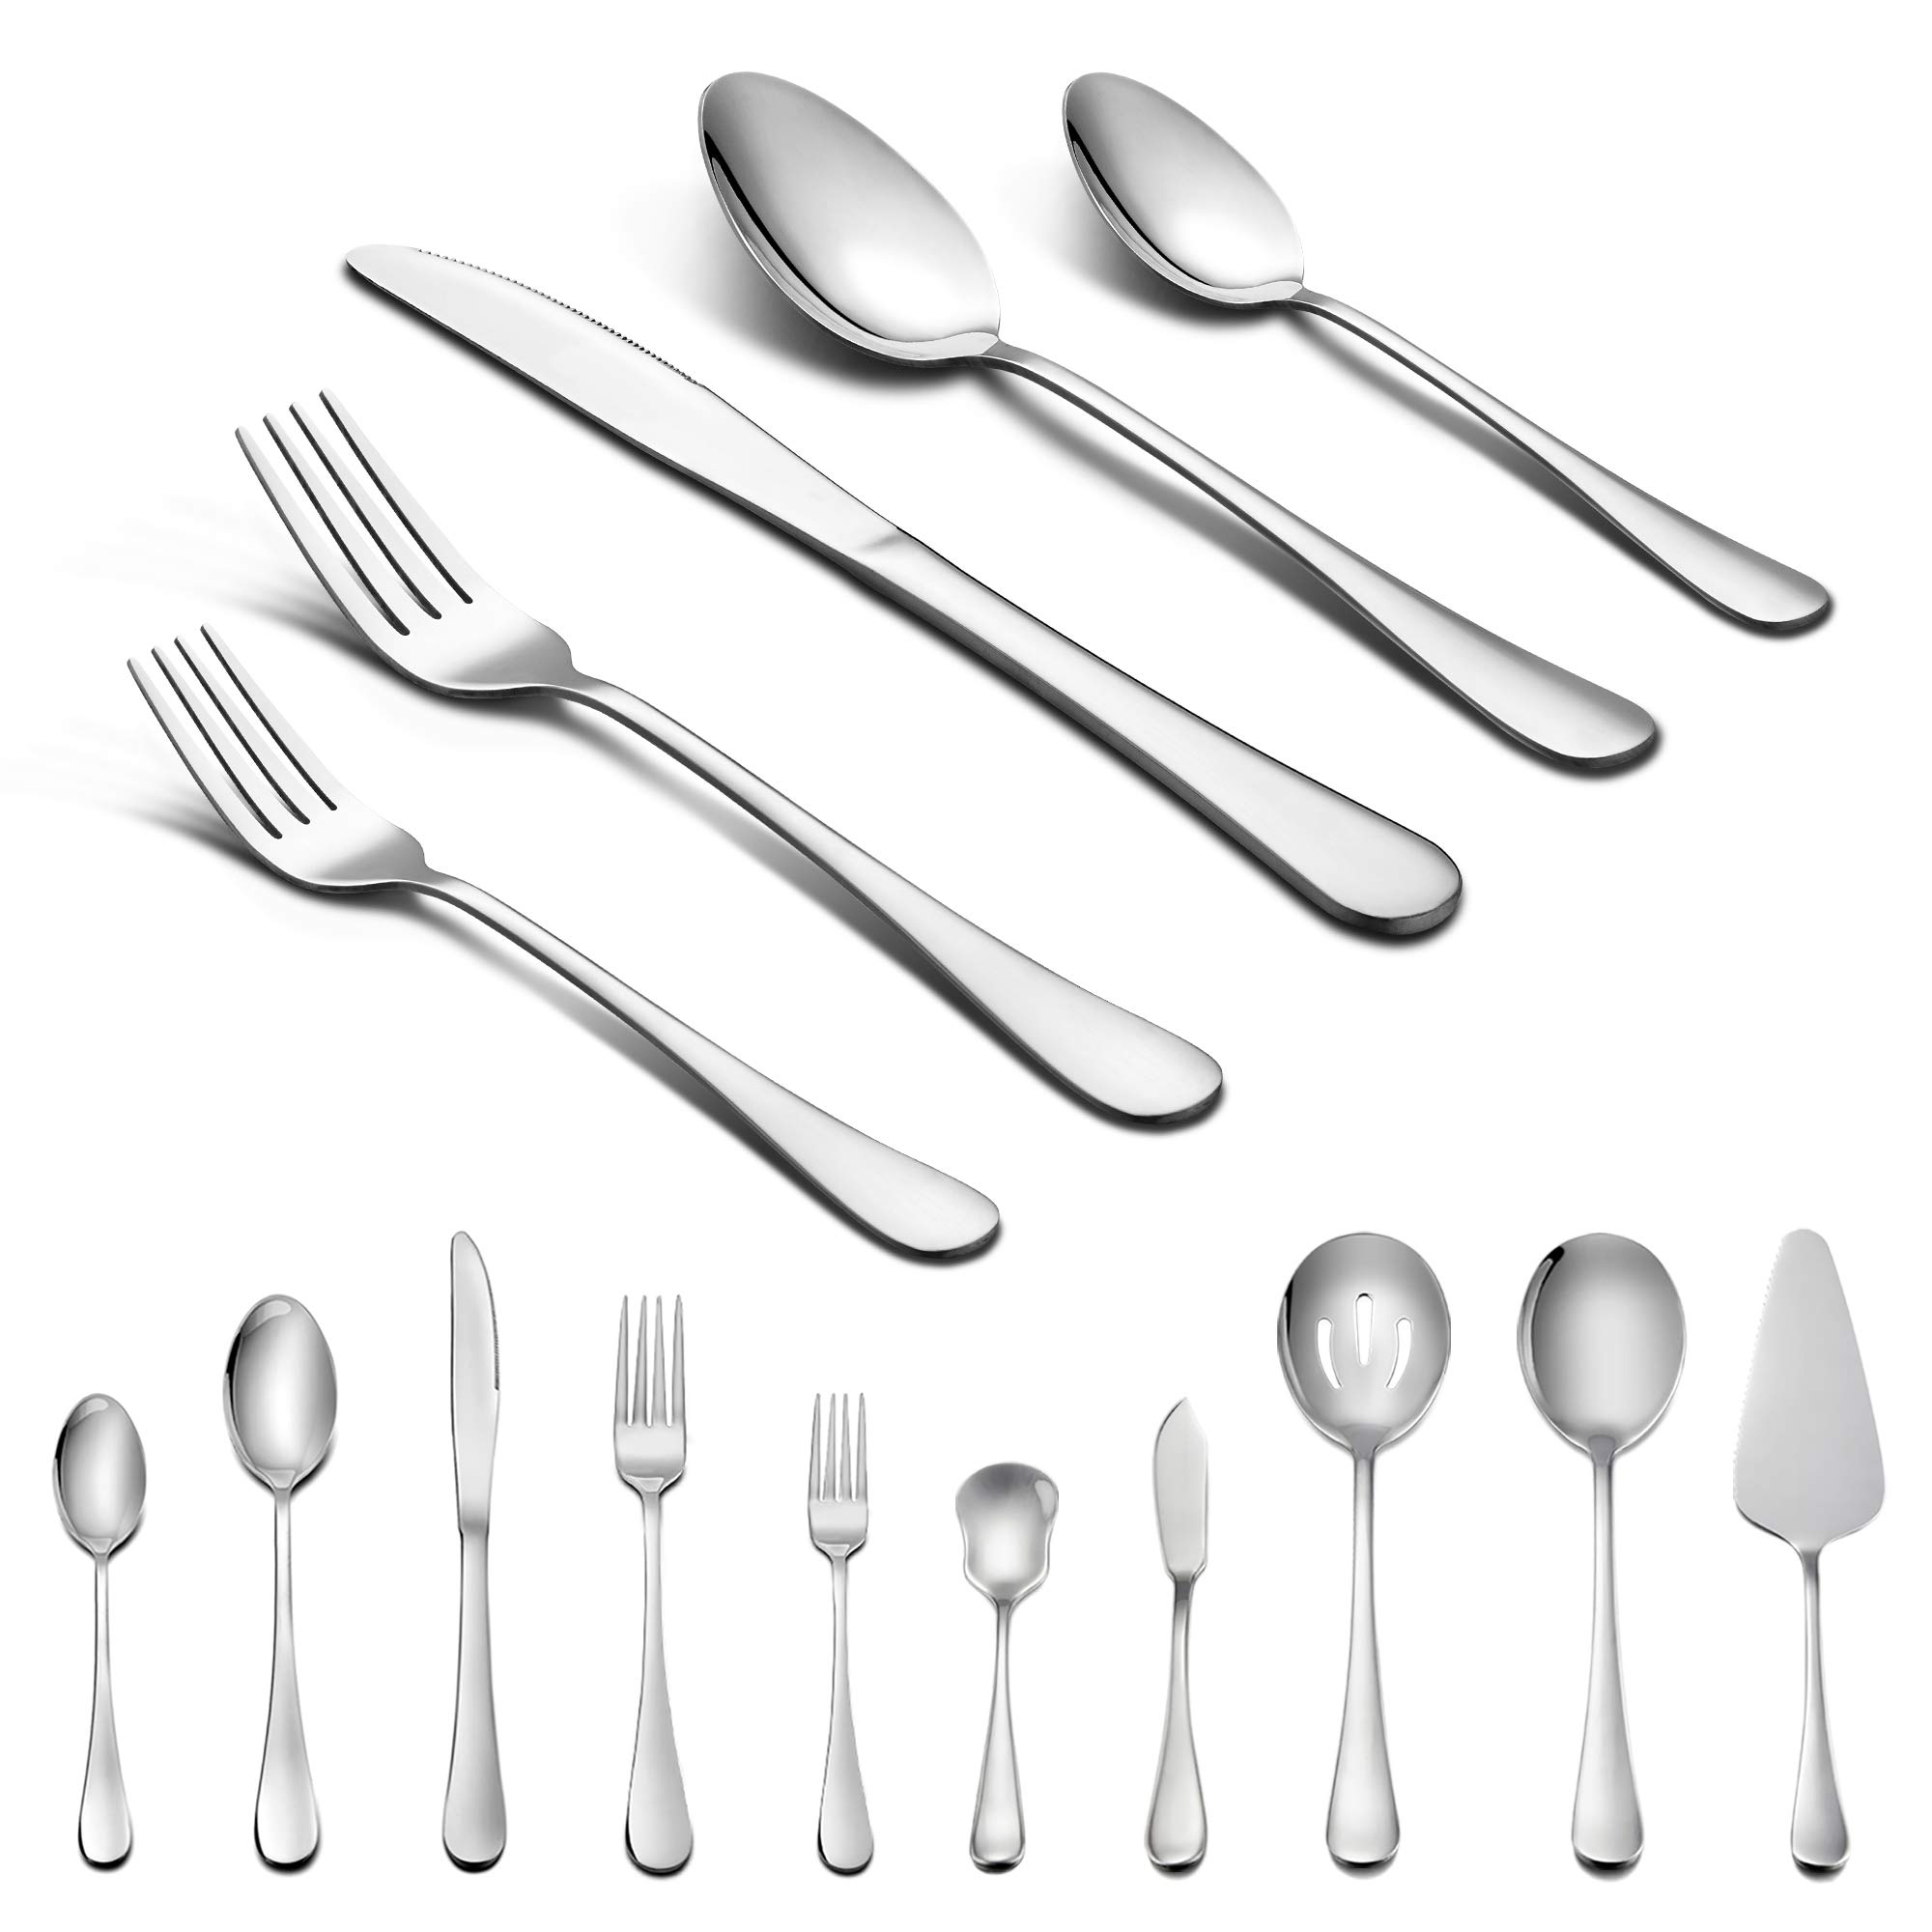 45-Piece Silverware Set with Serving Pieces, LIANYU Flatware Set Service for 8, Stainless Steel Cutlery for Kitchen Hotel Restaurant Wedding Party, Mirror Finish, Dishwasher Safe